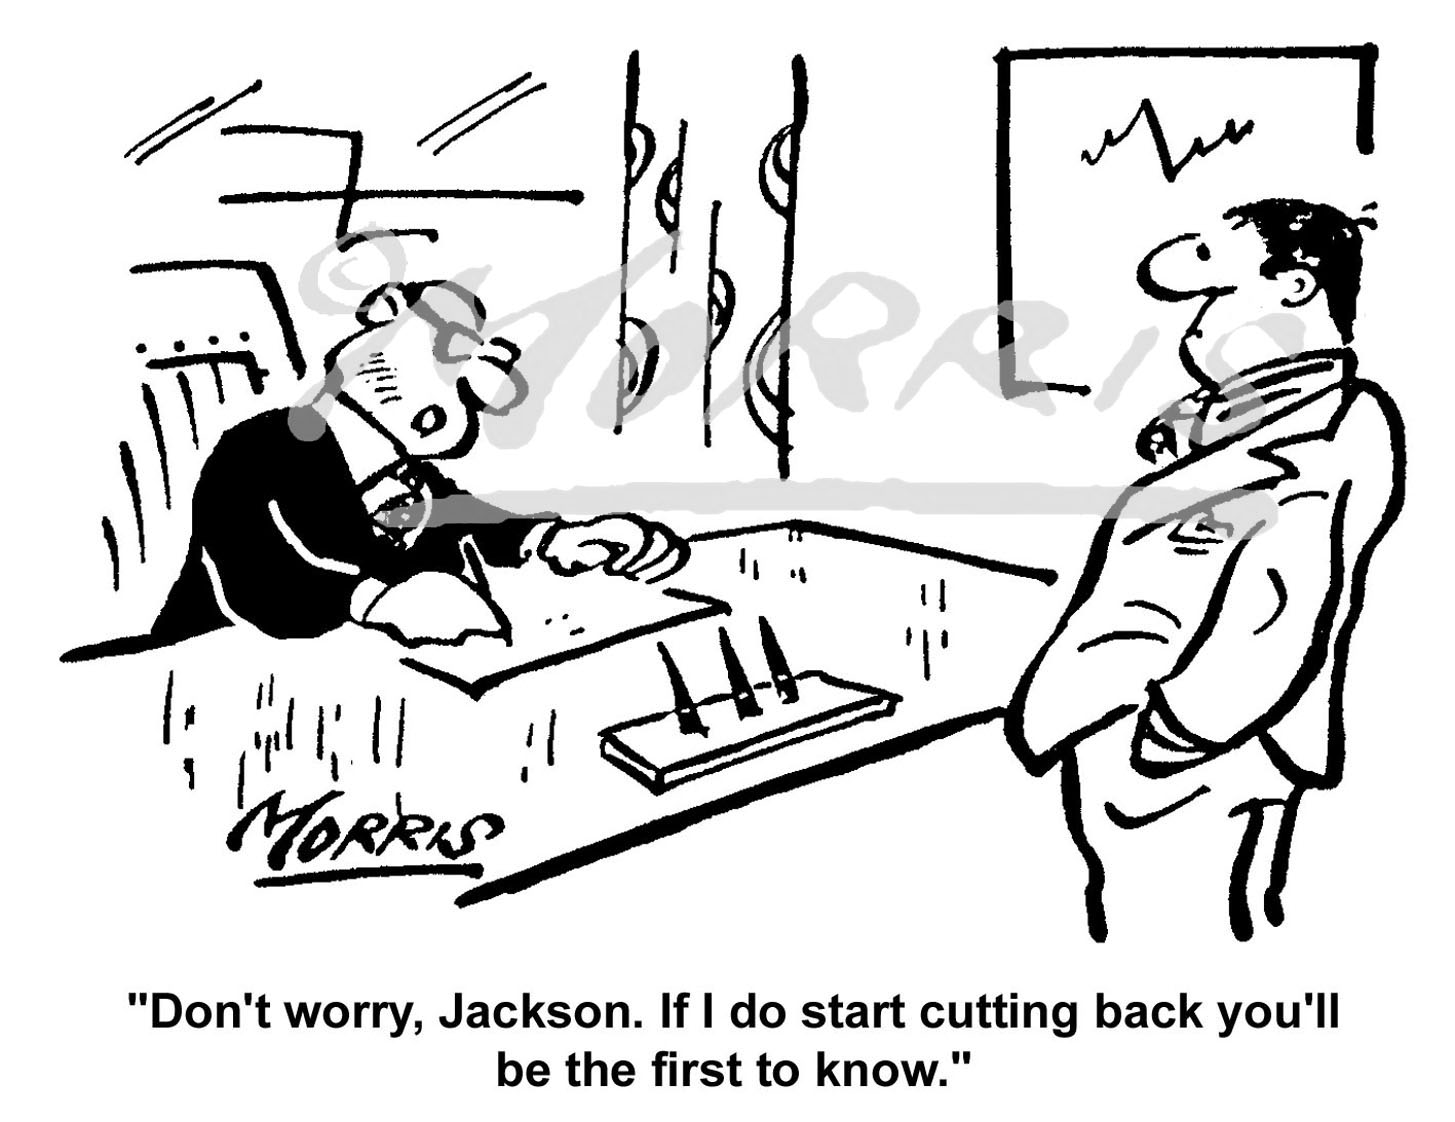 Management cartoon Ref: 0057bw